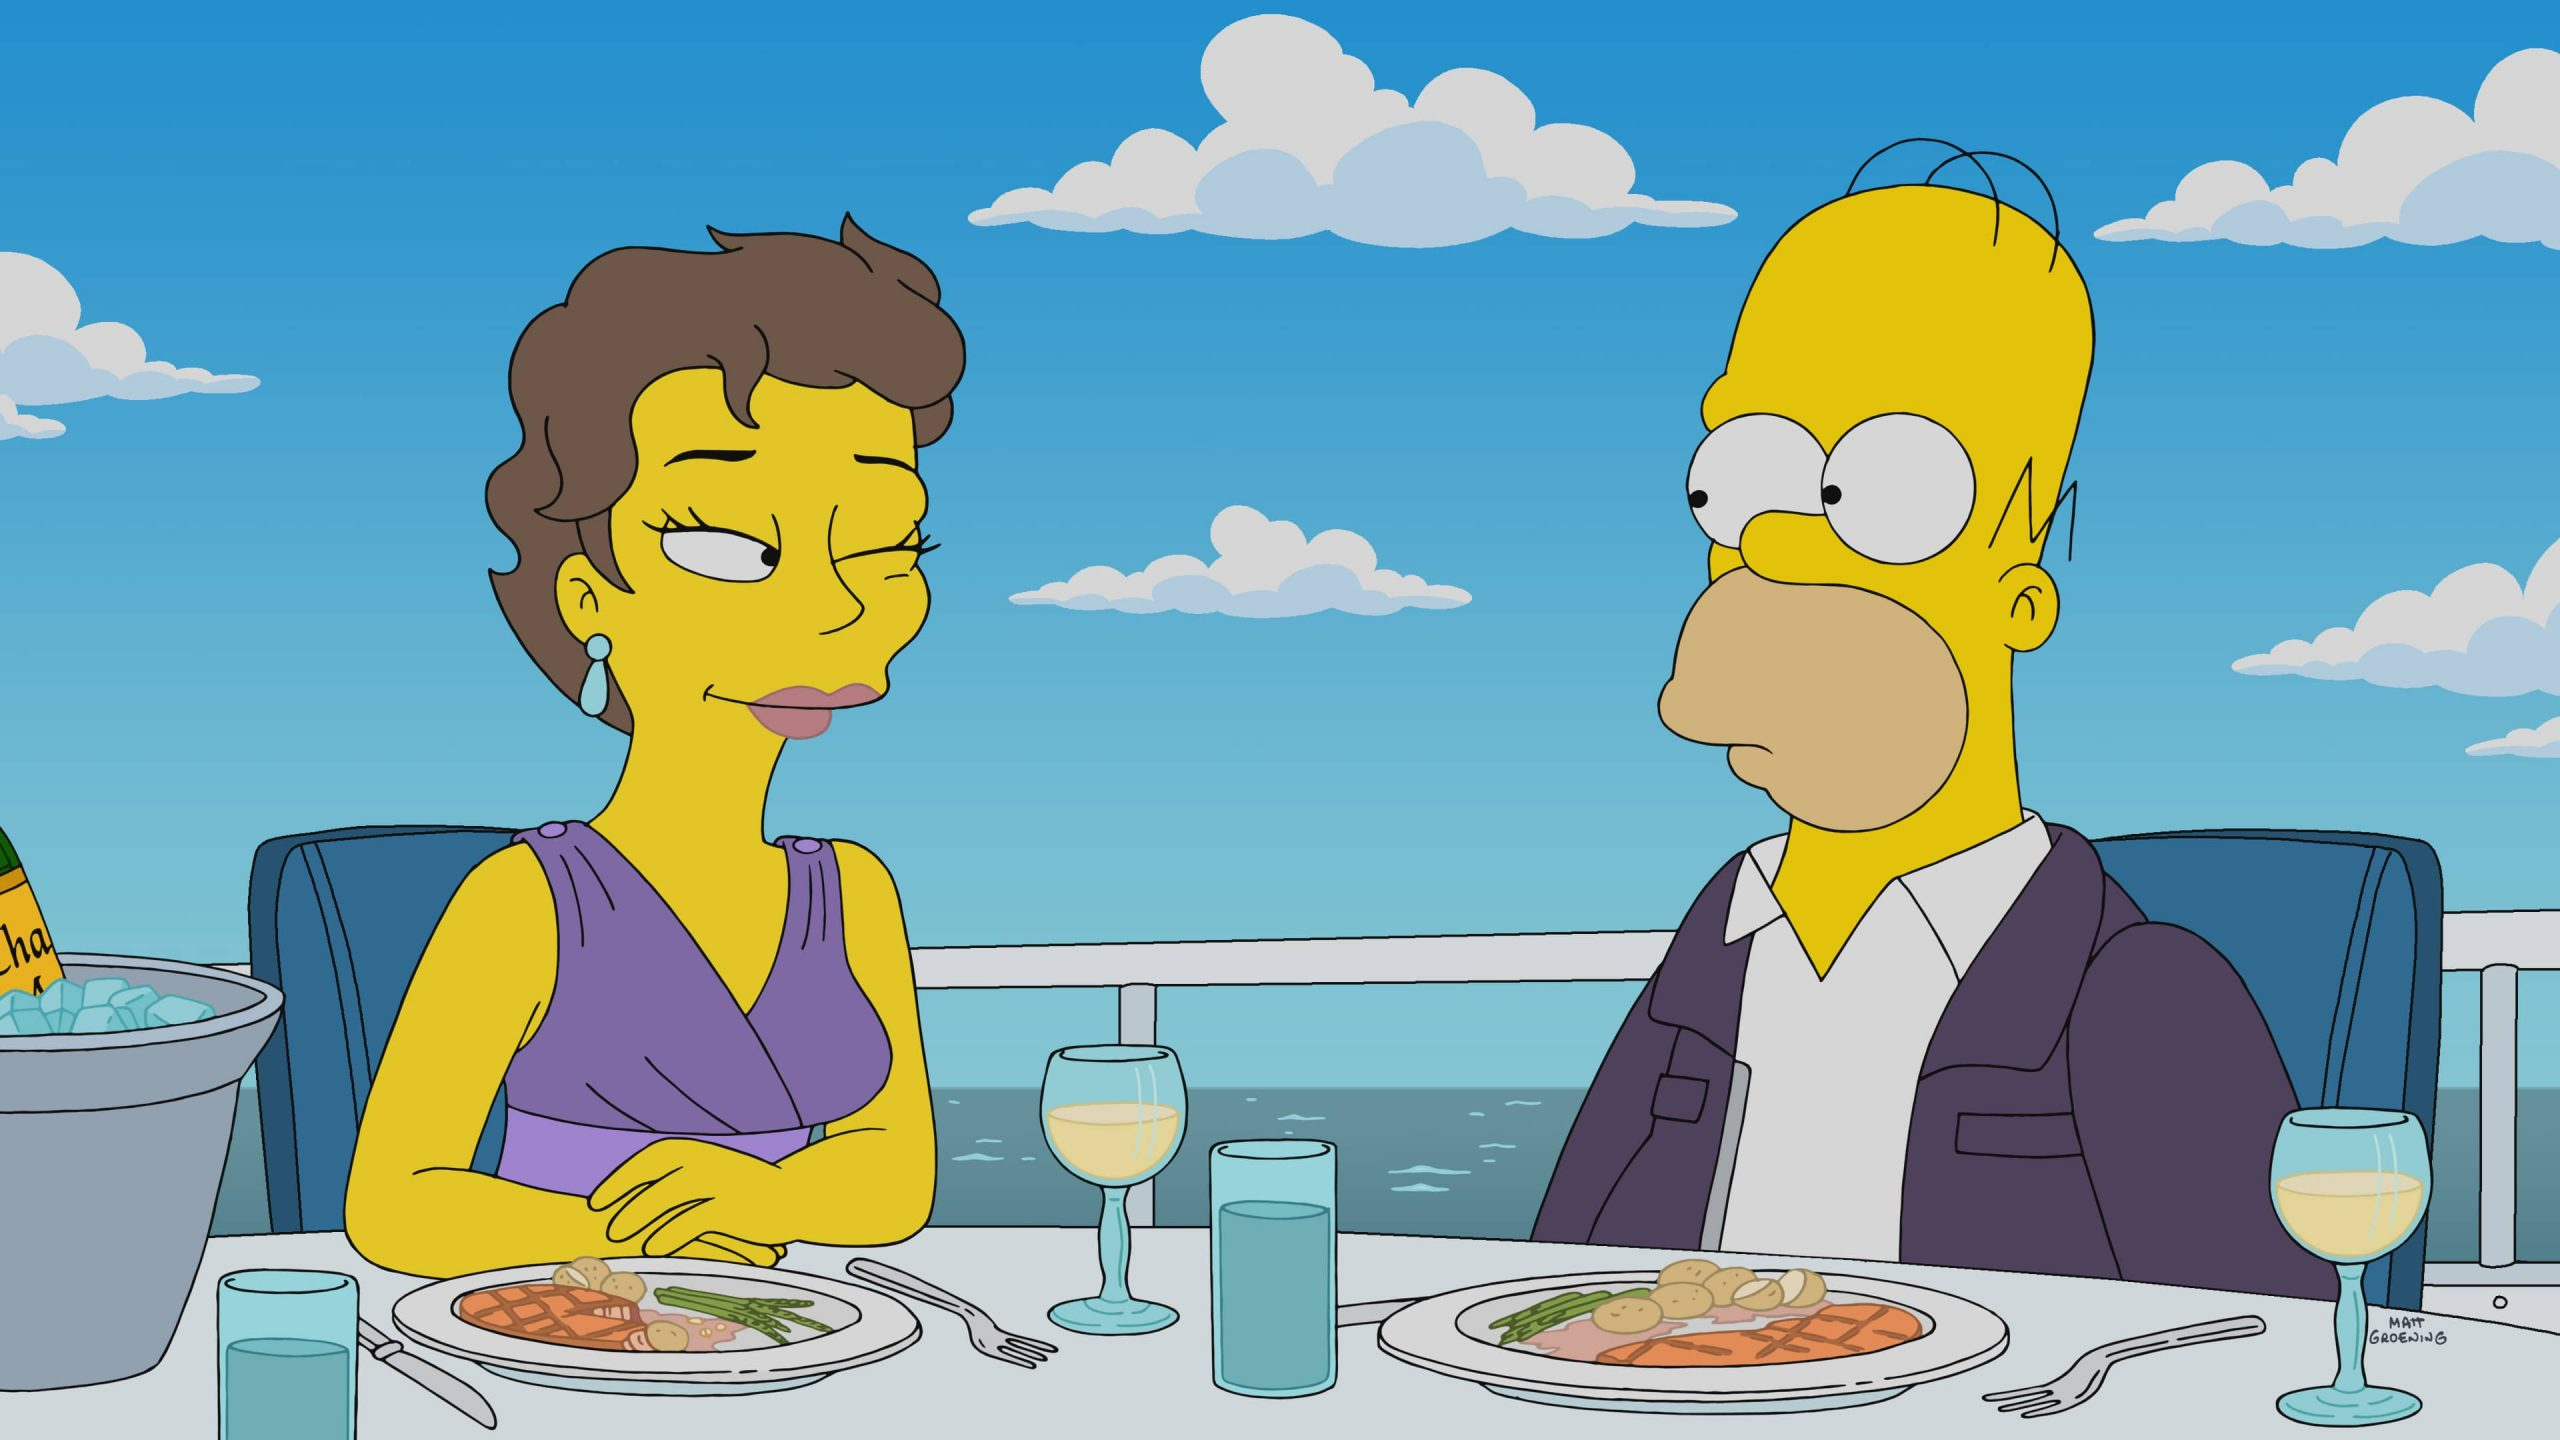 TheSimpsons 3115 The7BeerItch ZABF15Sc2059AAvidColorCorrected scaled